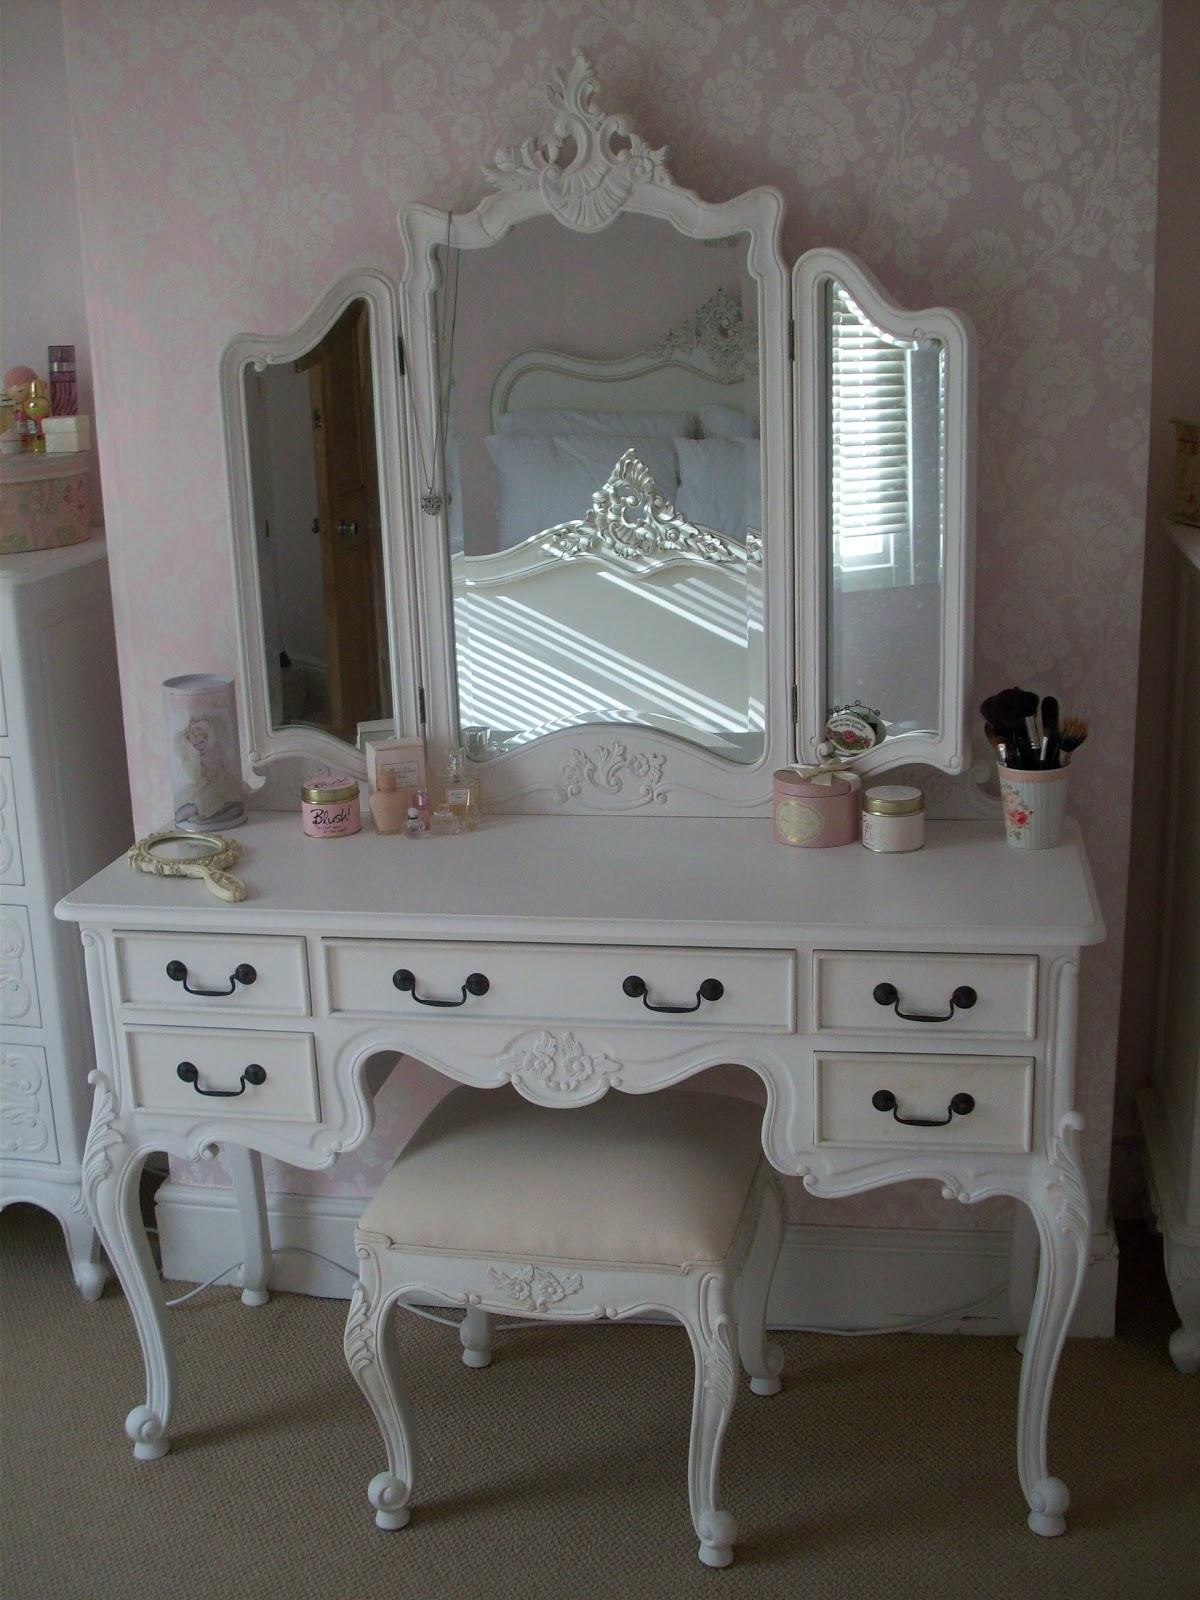 Shabby Chic White Makeup Vanity Set With Plenty Drawers And Tri With Regard To White Shabby Chic Mirror Sale (Image 19 of 20)